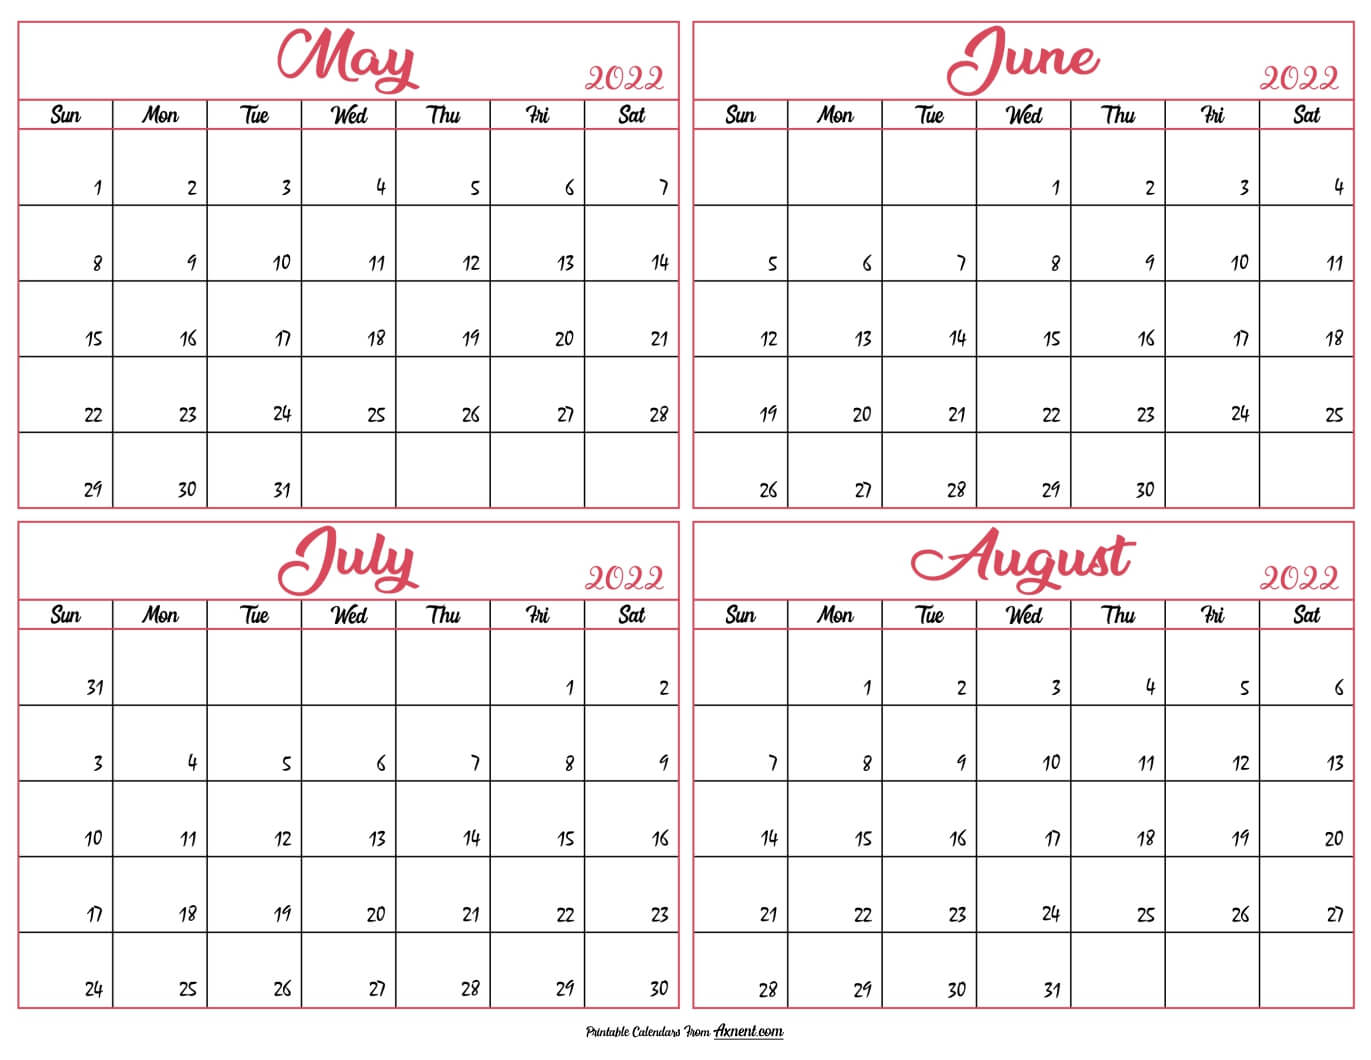 May to August Calendar 2022